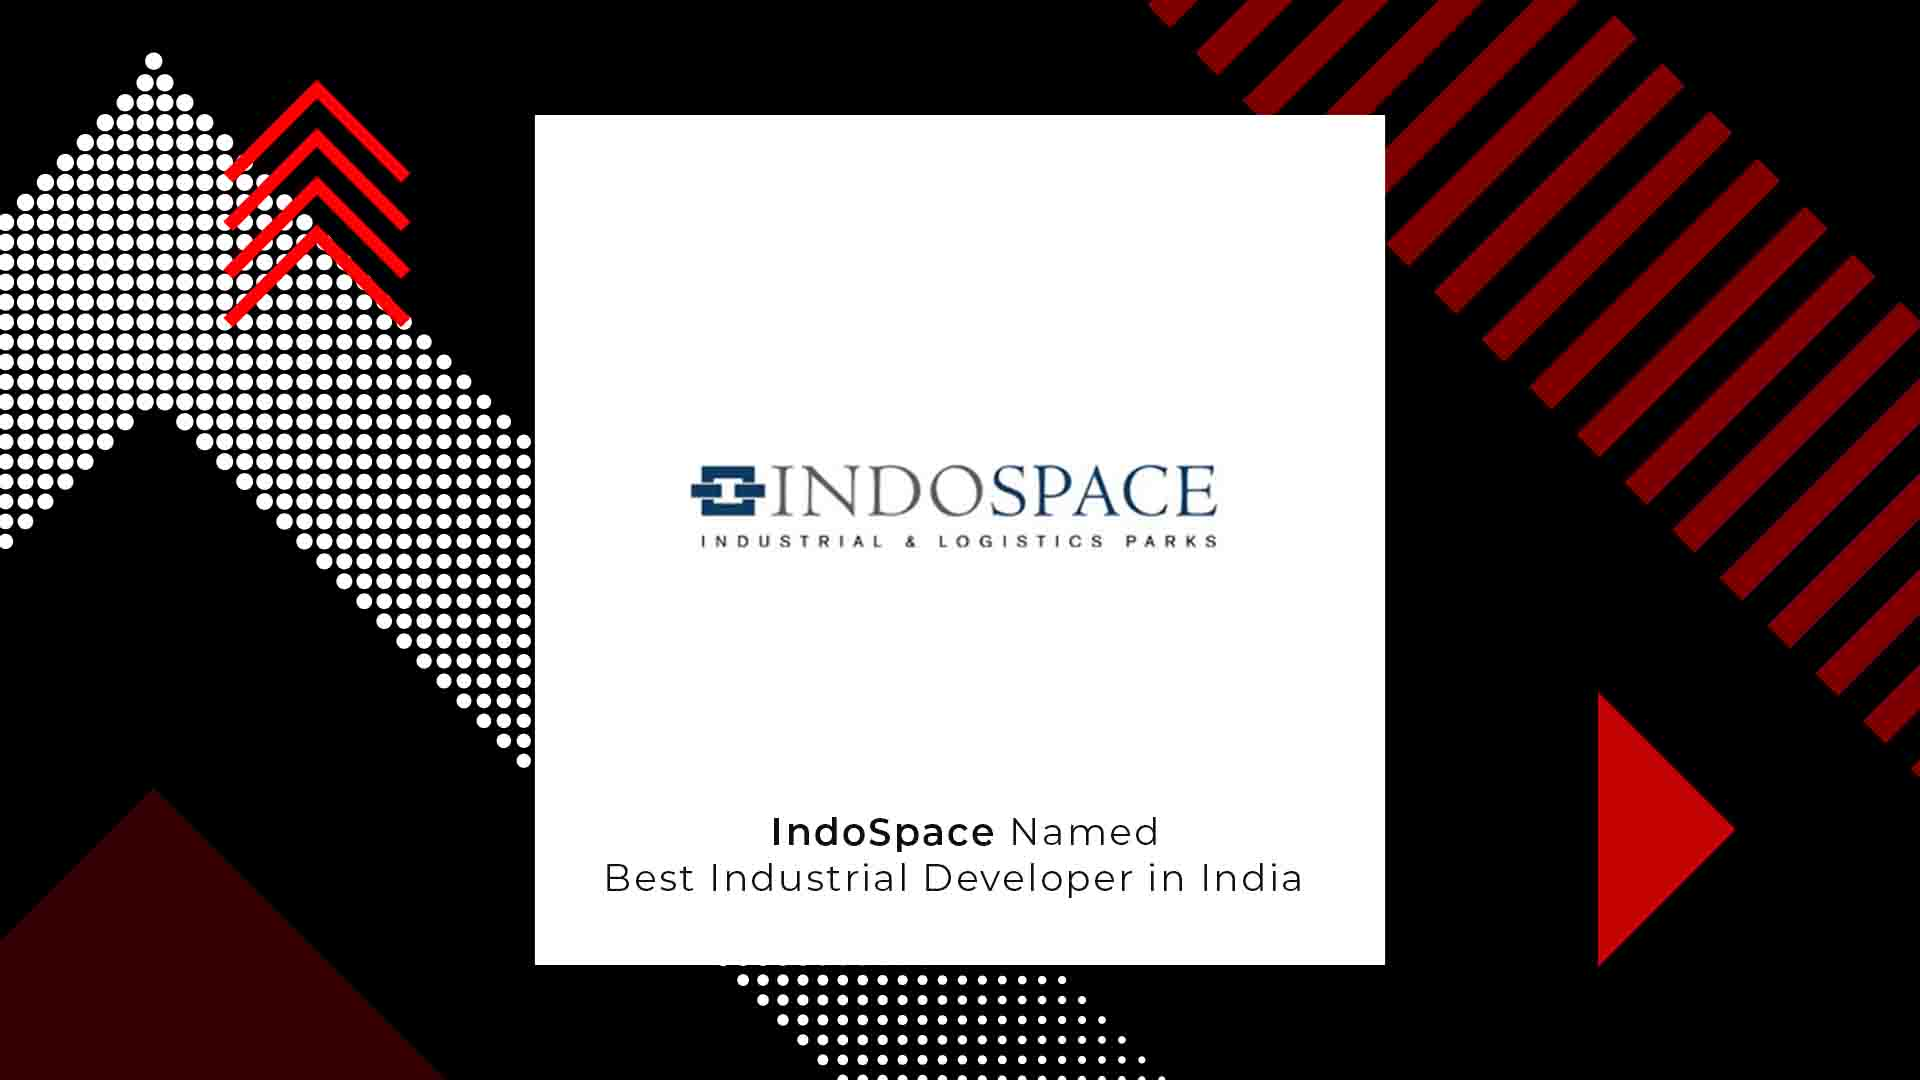 IndoSpace Named Best Industrial Developer in India by Euromoney